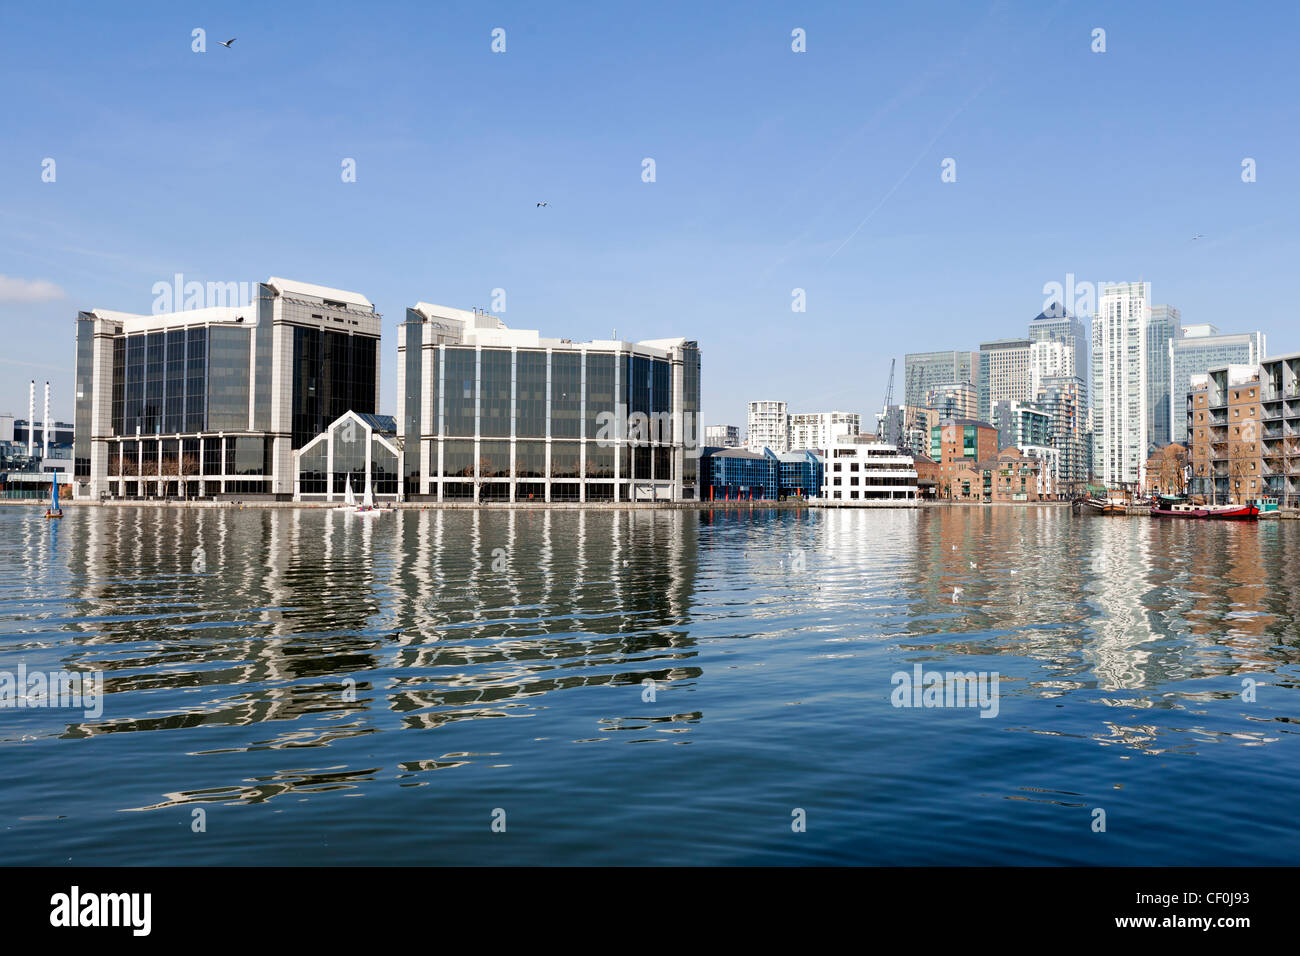 Millwall Outer Dock, Isle of Dogs, Tower Hamlets, London, UK. - Stock Image